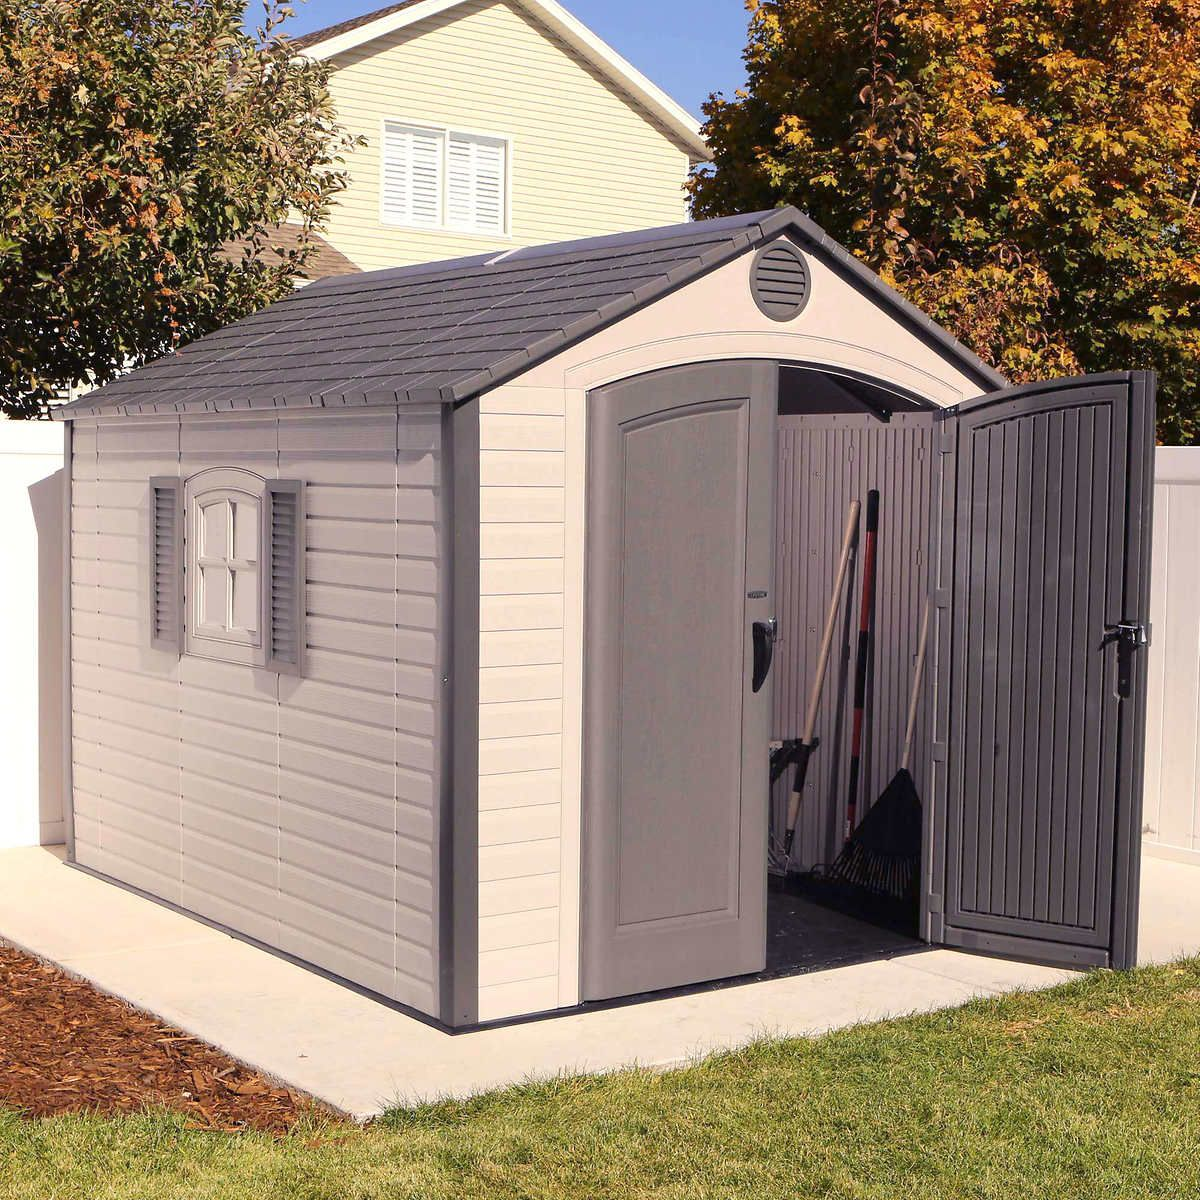 Pin By Erin Terry On Shopping List Building A Shed Outdoor Storage Sheds Wood Shed Plans